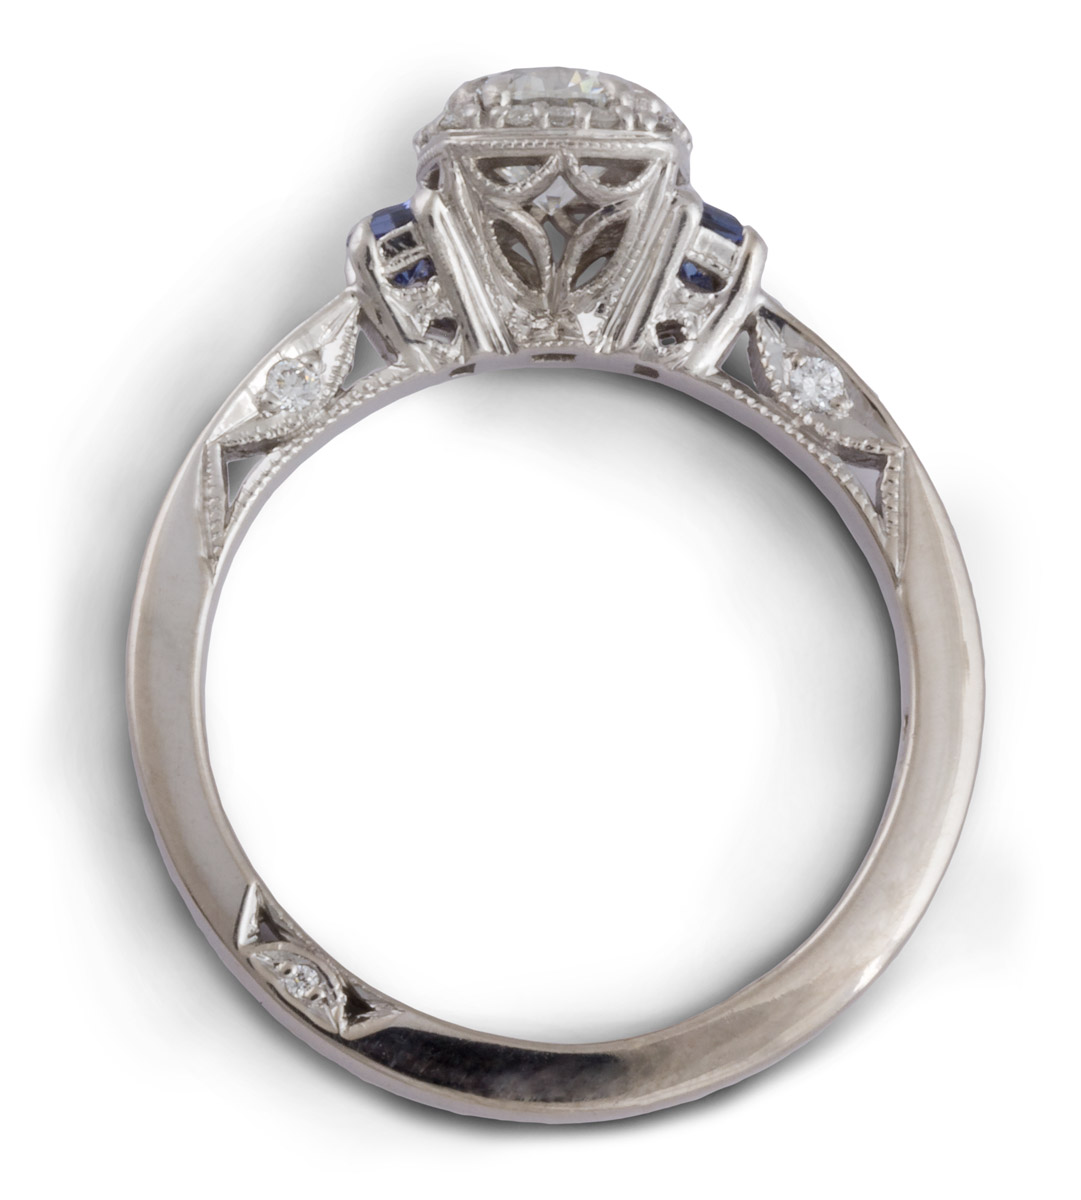 Filigree Diamond Engagement Ring With Sapphires - Top